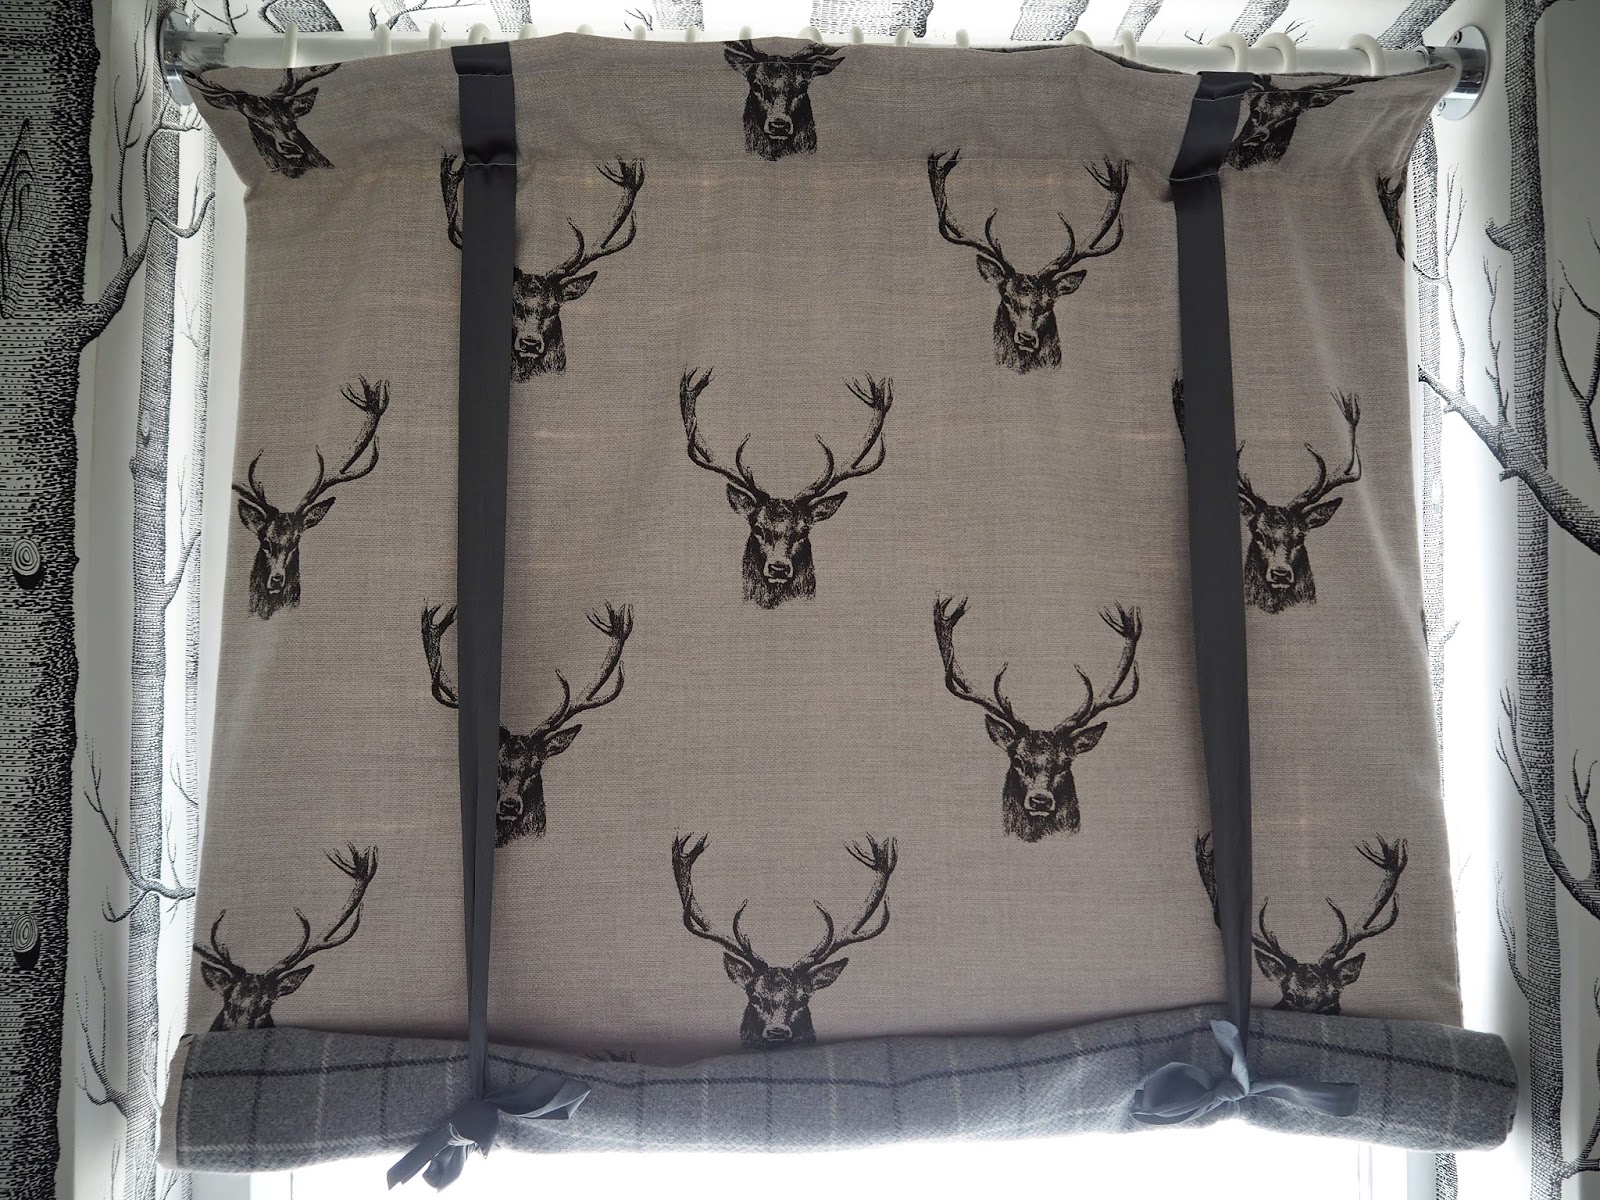 Stag blind in room suite 51, Stirk House, Gisburn